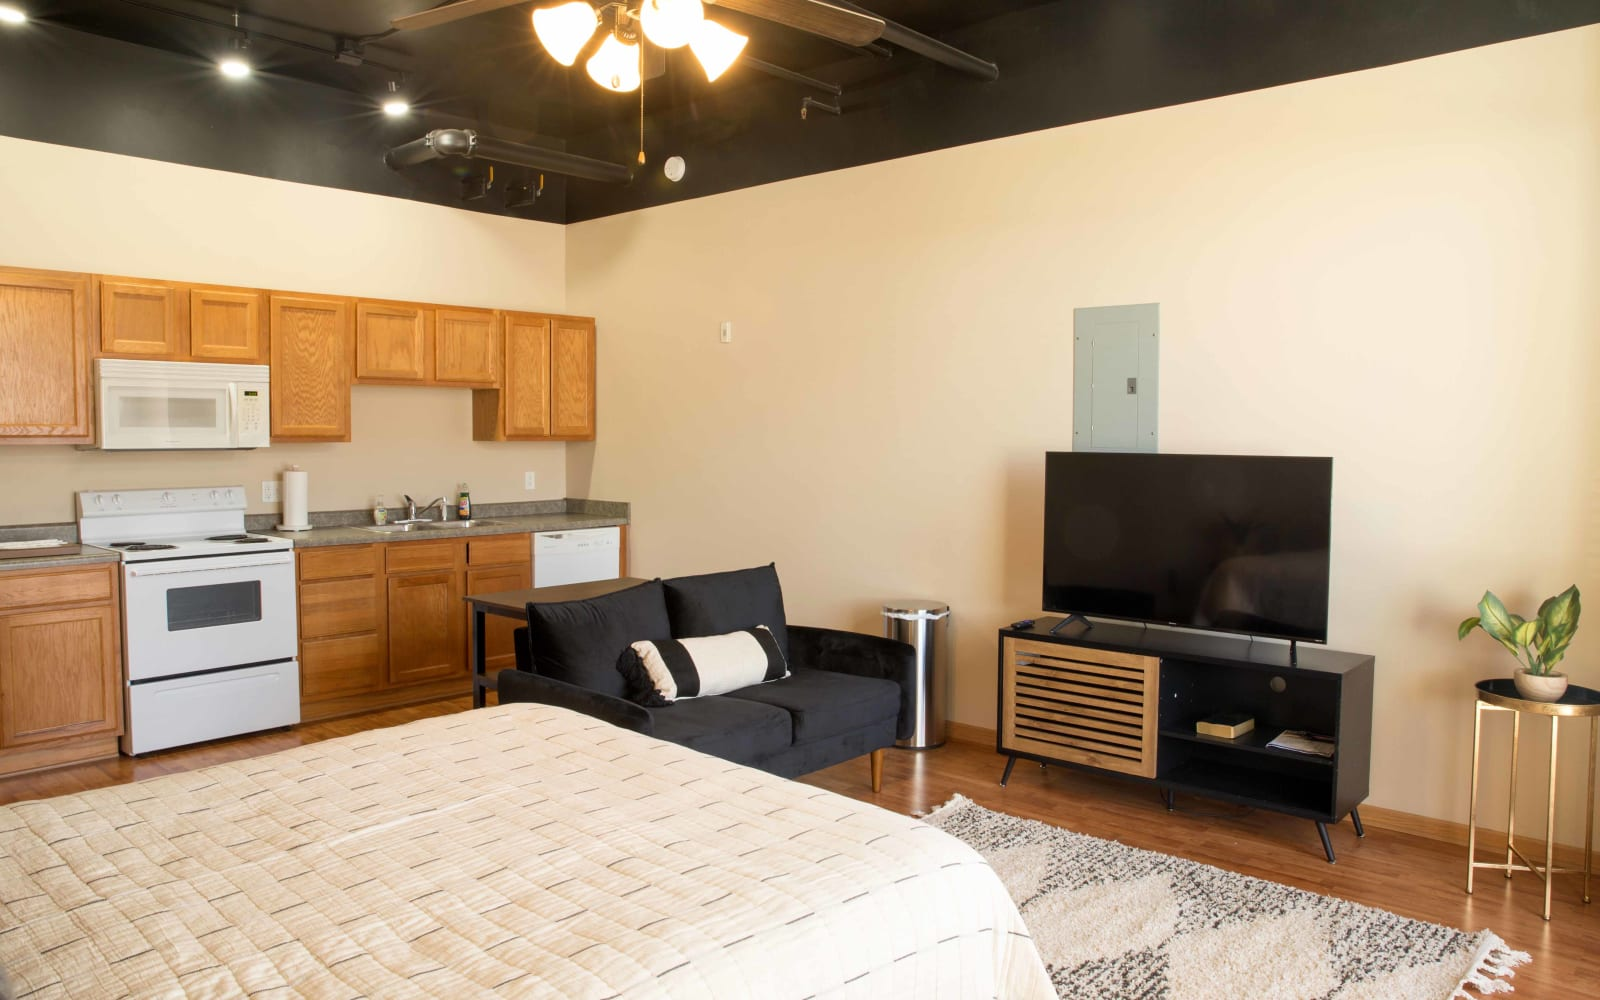 Studio apartment entry and kitchen at West Towne in Ames, Iowa